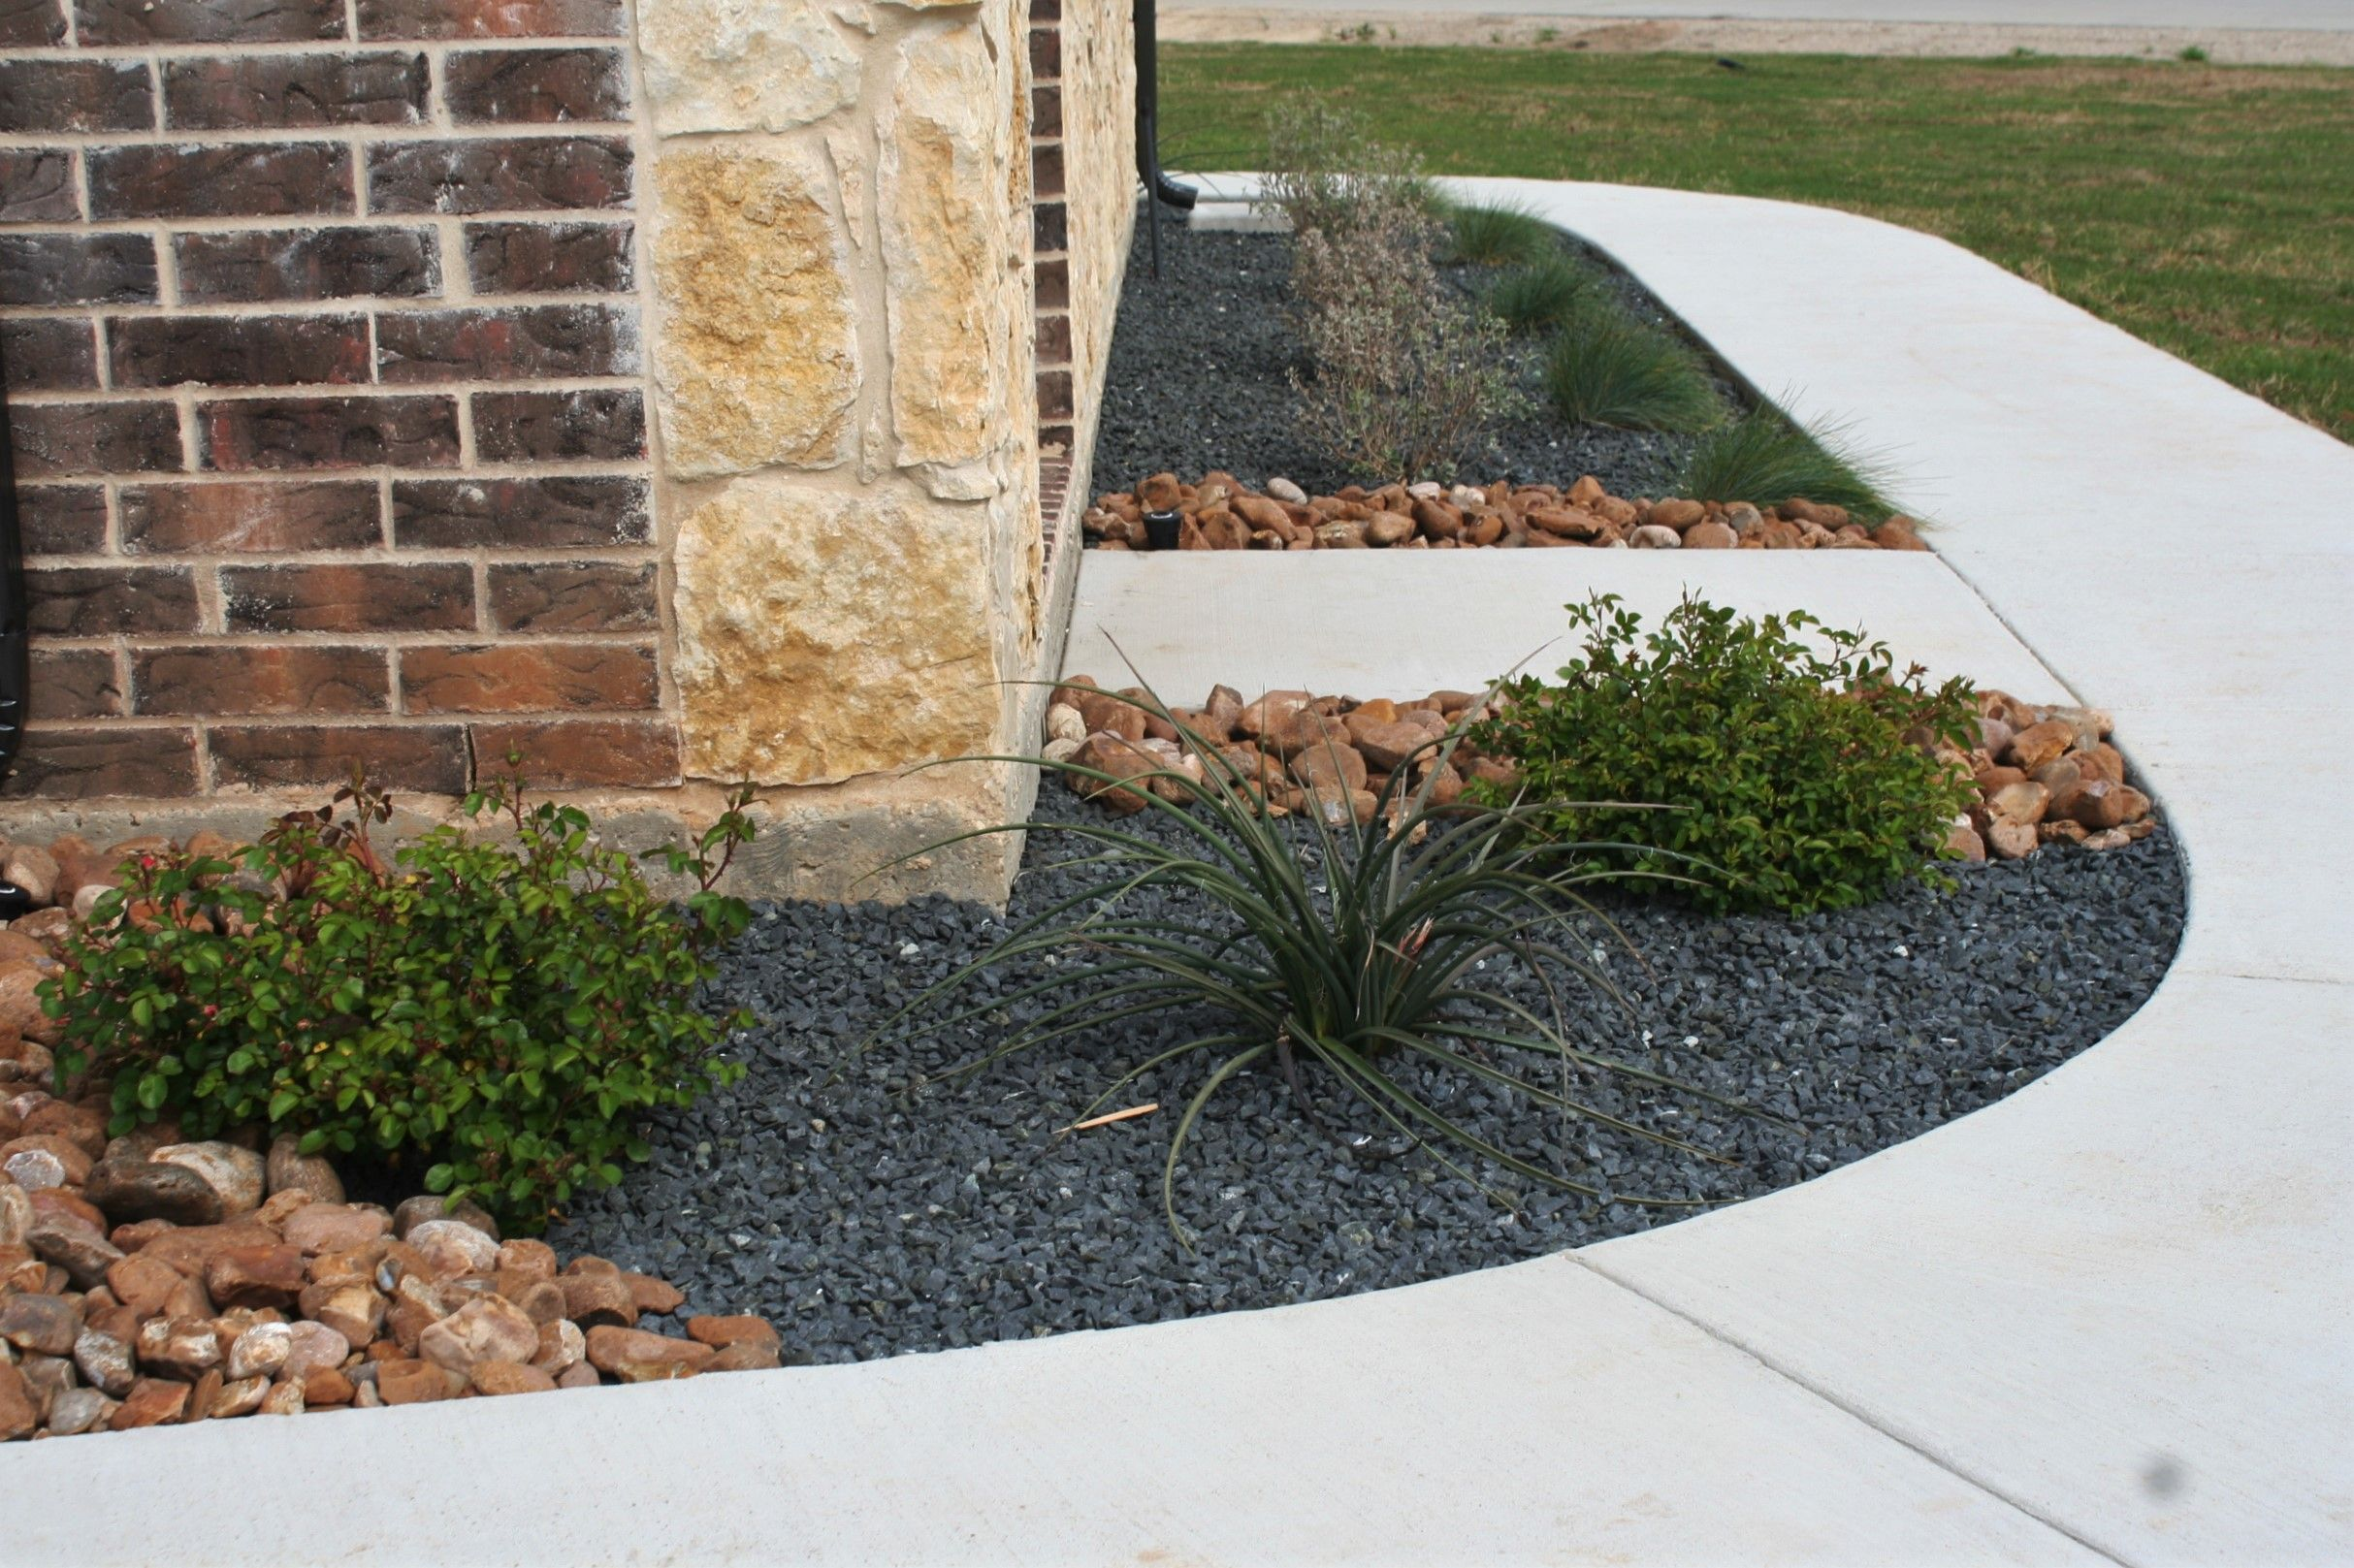 Black Star Gravel And Texas River Rock Flowerbed Landscaping